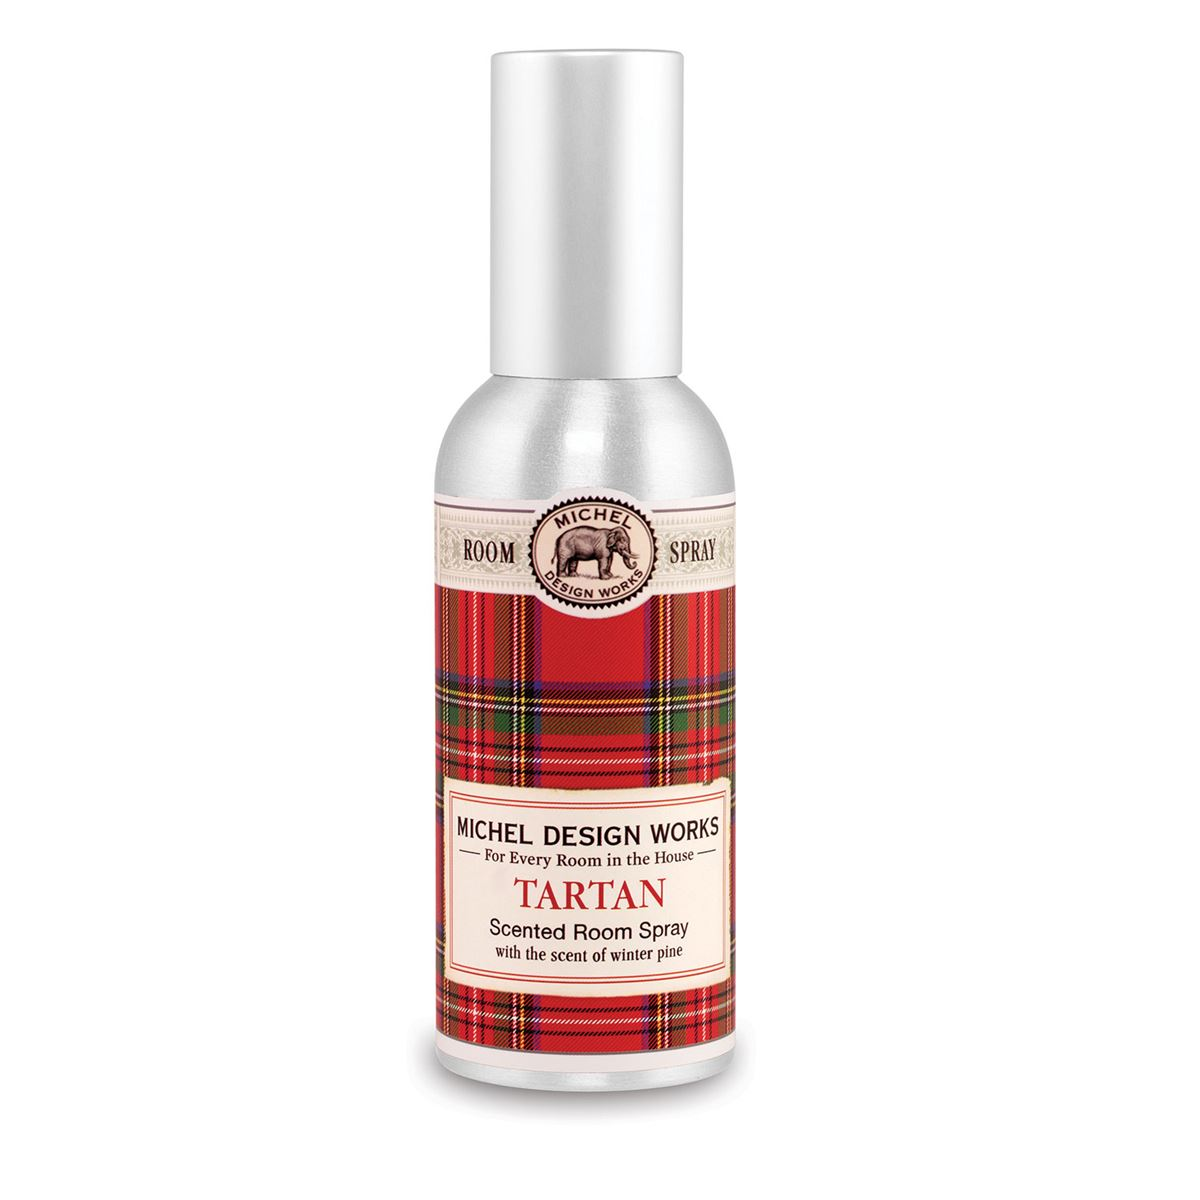 Change the ambiance of a room in an instant with our luxurious room spray. Comes in a silver metal container. Scent of winter pine and snow with notes of moss and amber.